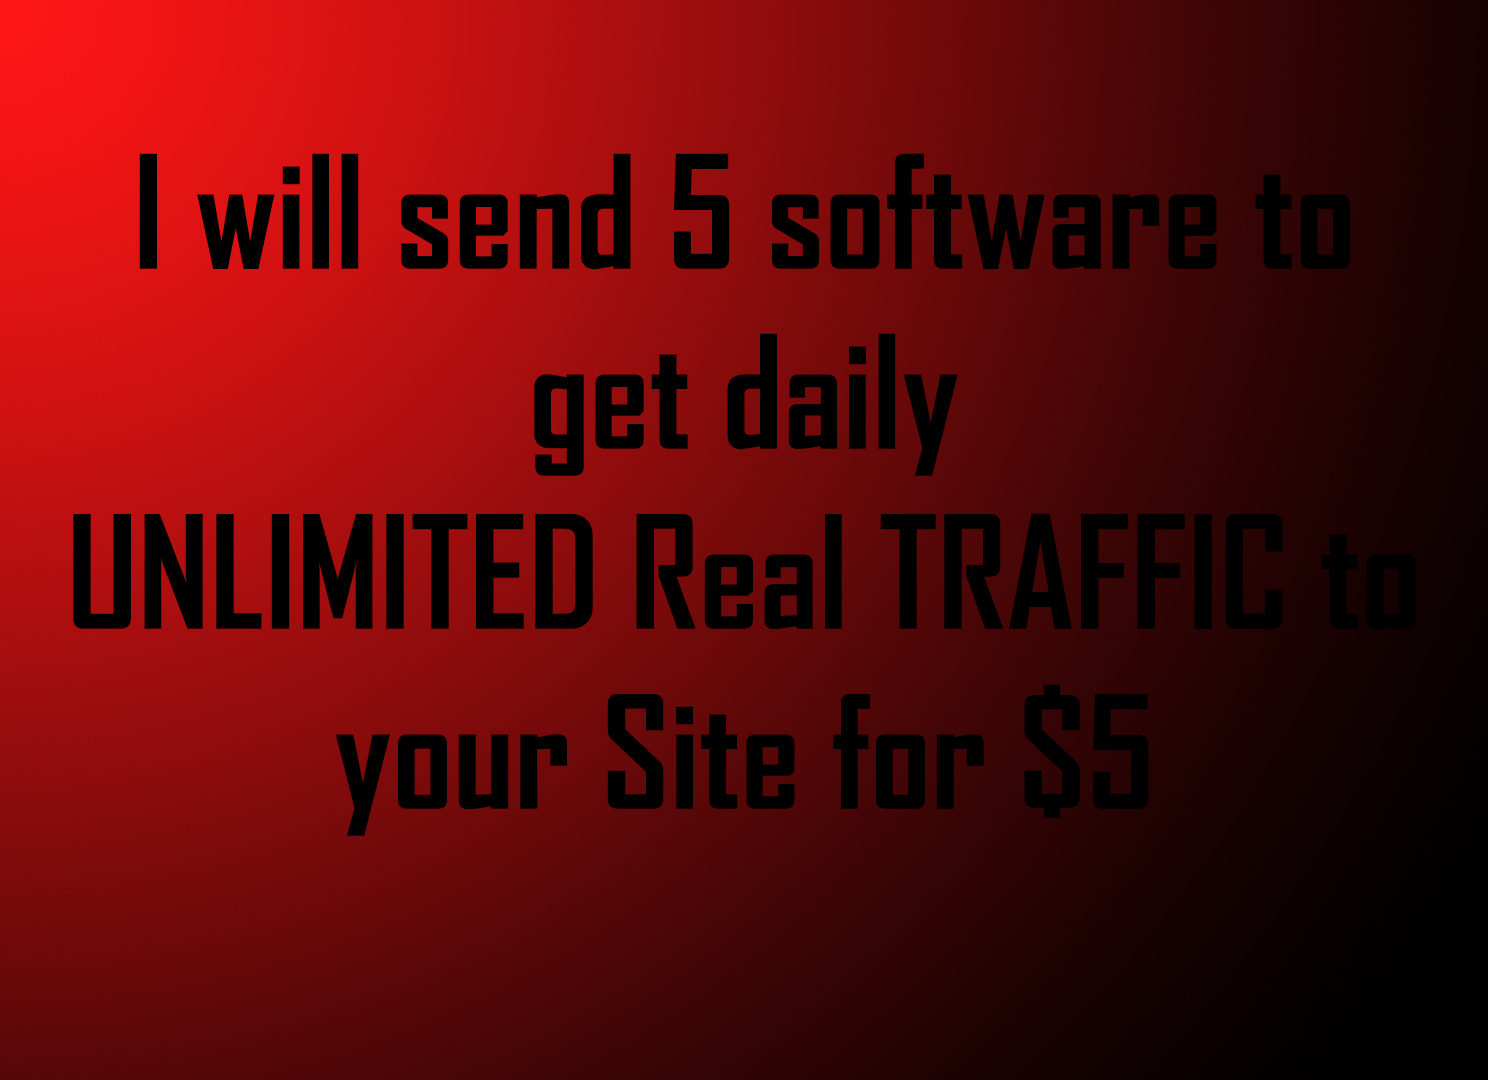 send 5 software to get daily UNLIMITED Real TRAFFIC to your Site